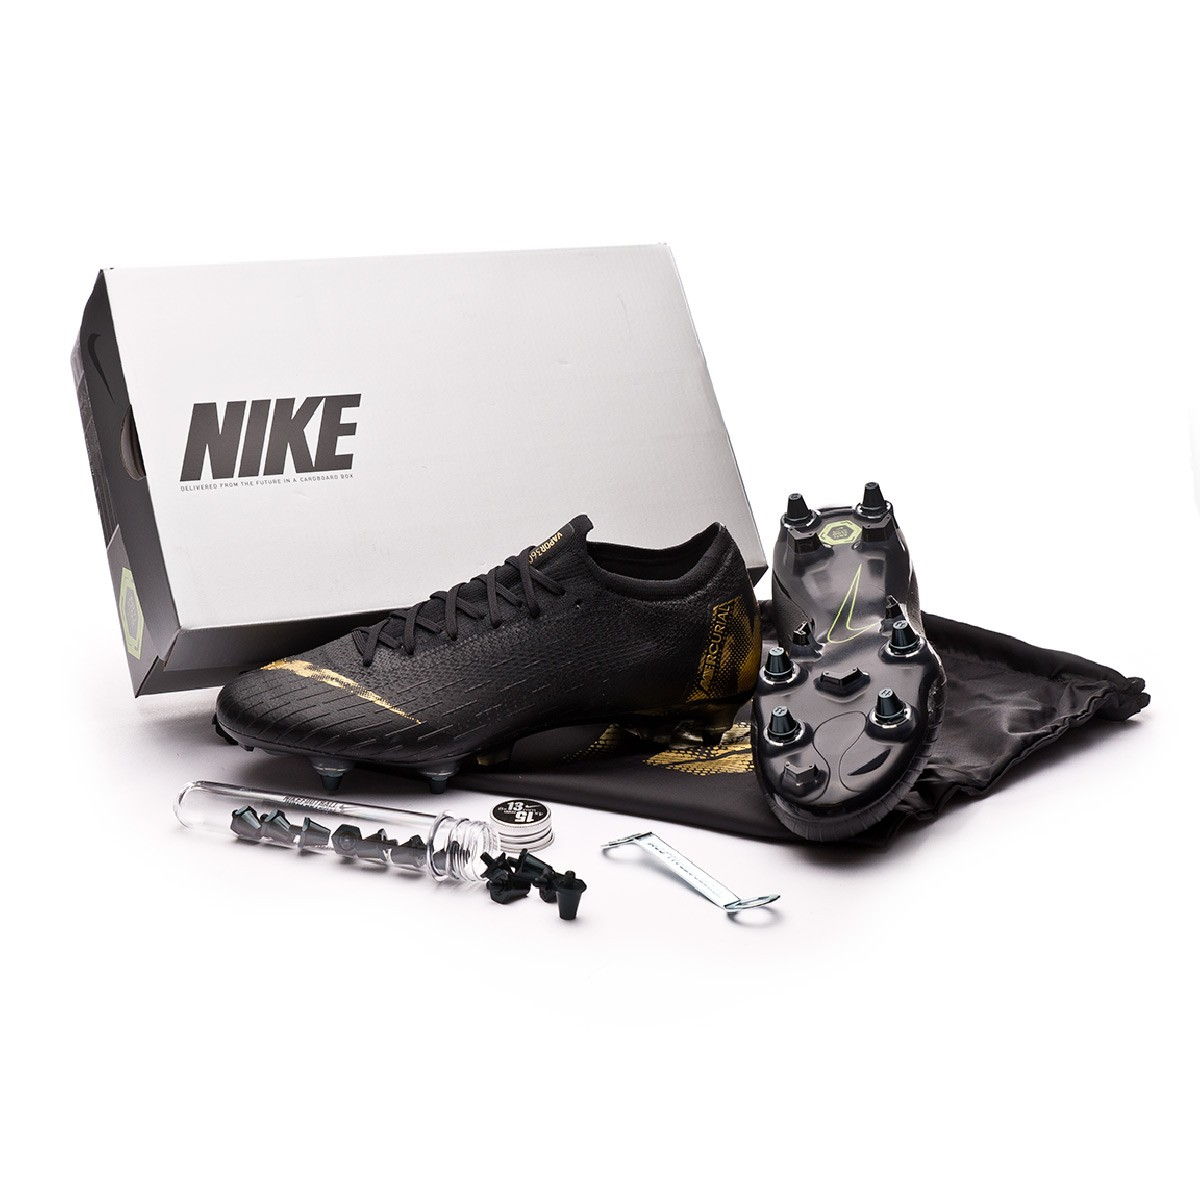 6e41824e57fd2 Football Boots Nike Mercurial Vapor XII Elite Anti-Clog SG-Pro Black-Metallic  vivid gold - Football store Fútbol Emotion